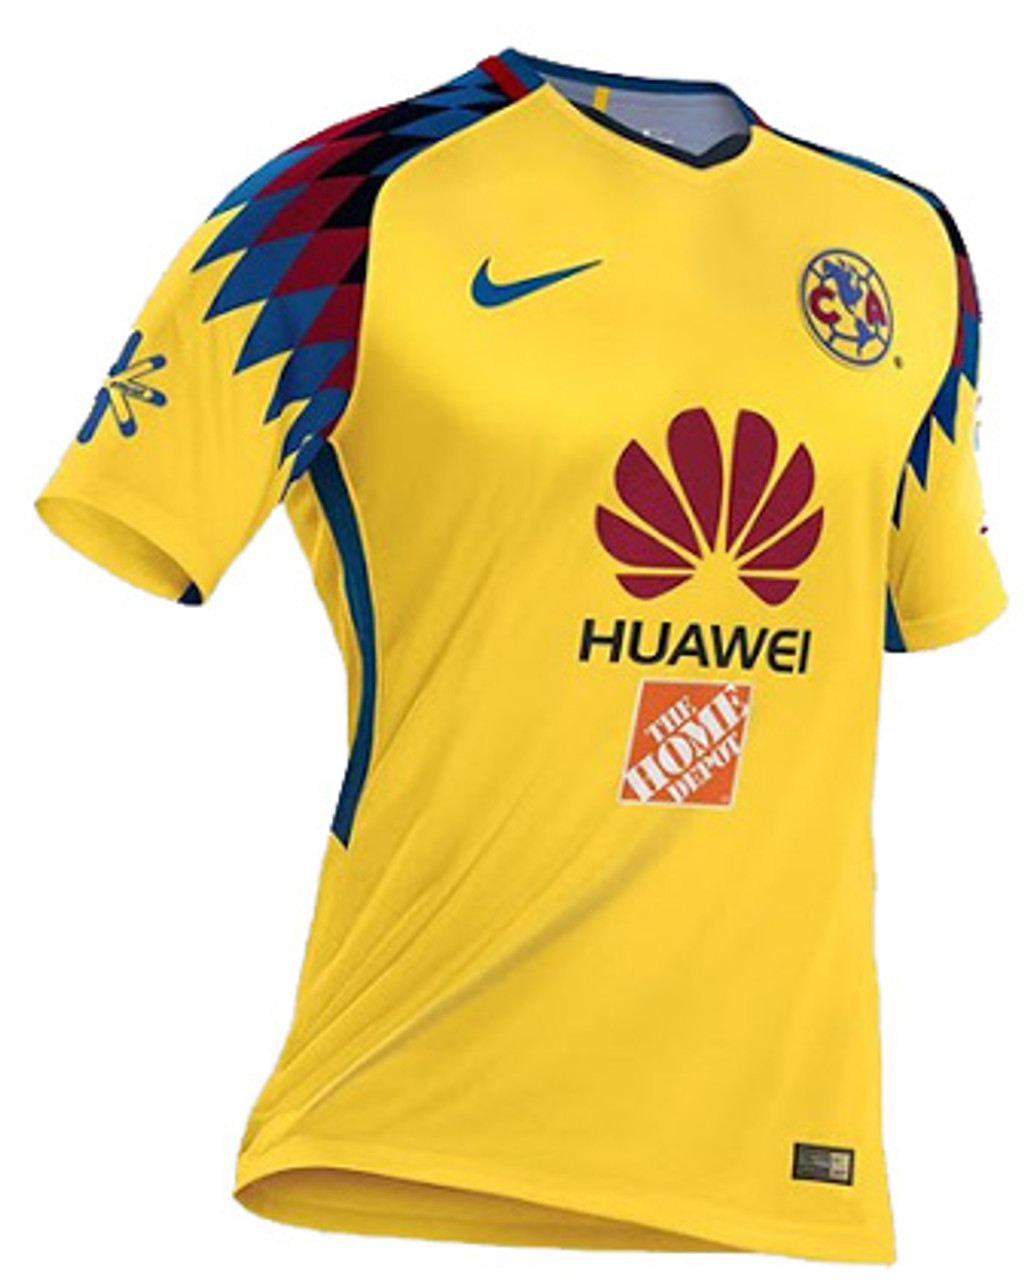 newest 6c627 d8ae0 NIKE CLUB AMERICA 2018 3RD JERSEY YELLOW